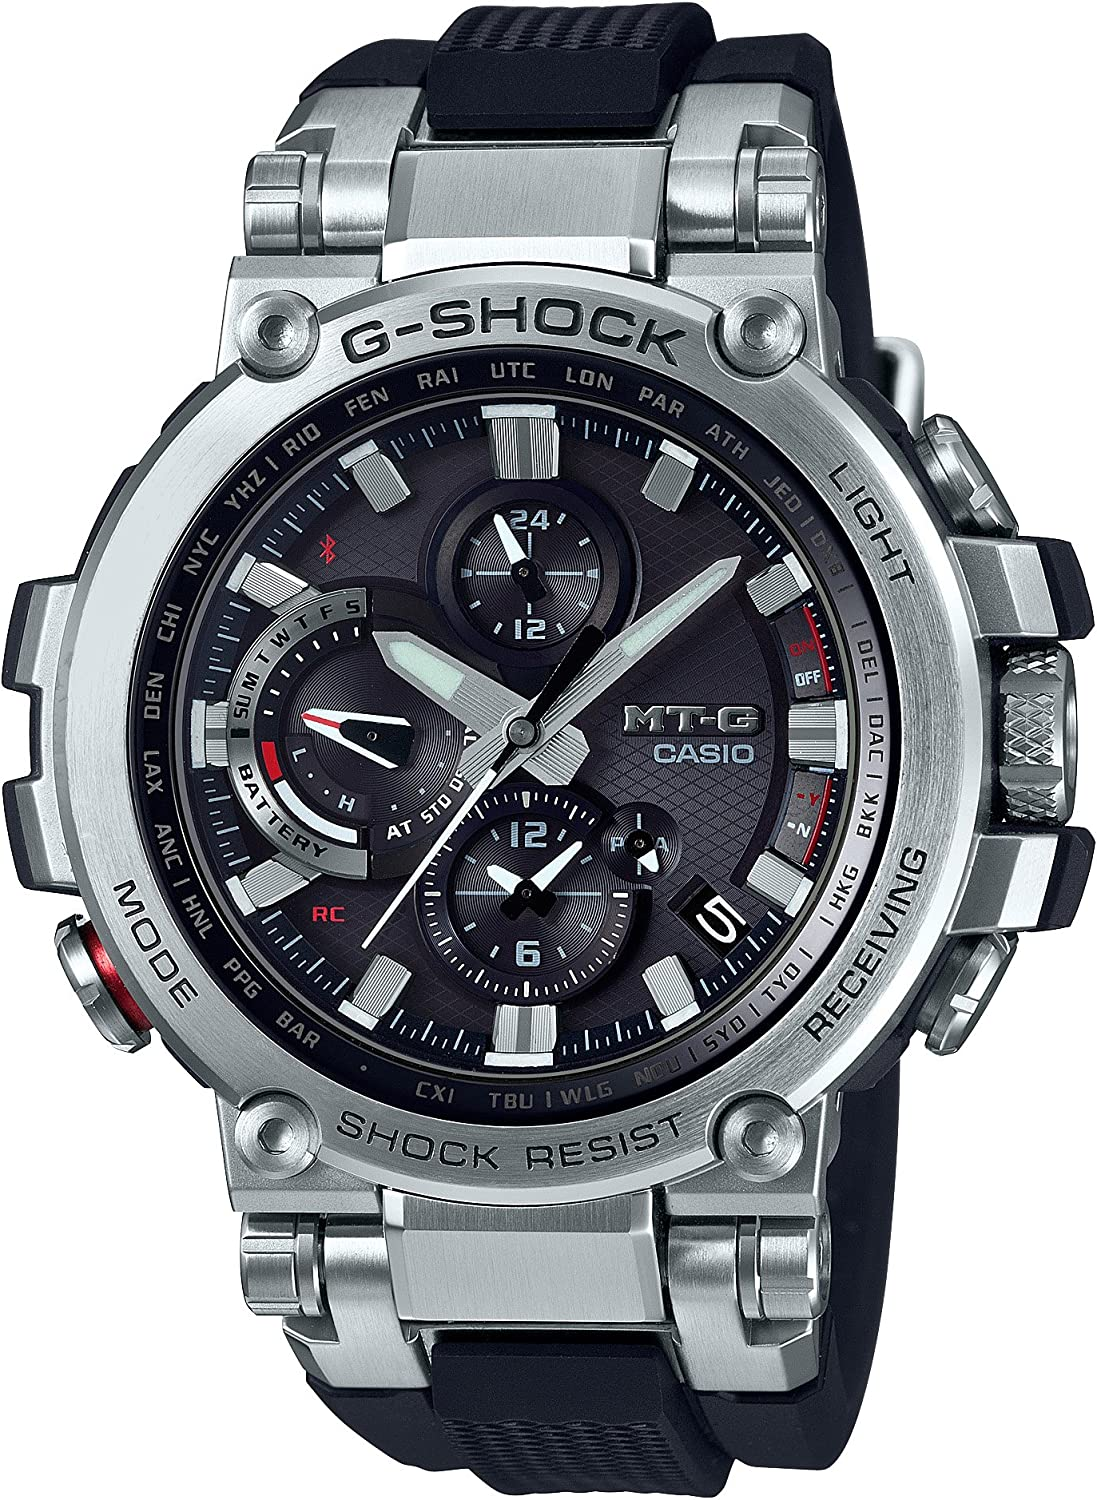 CASIO G-SHOCK MT-G Bluetooth MTG-B1000-1AJF Japan Domestic Genuine Products